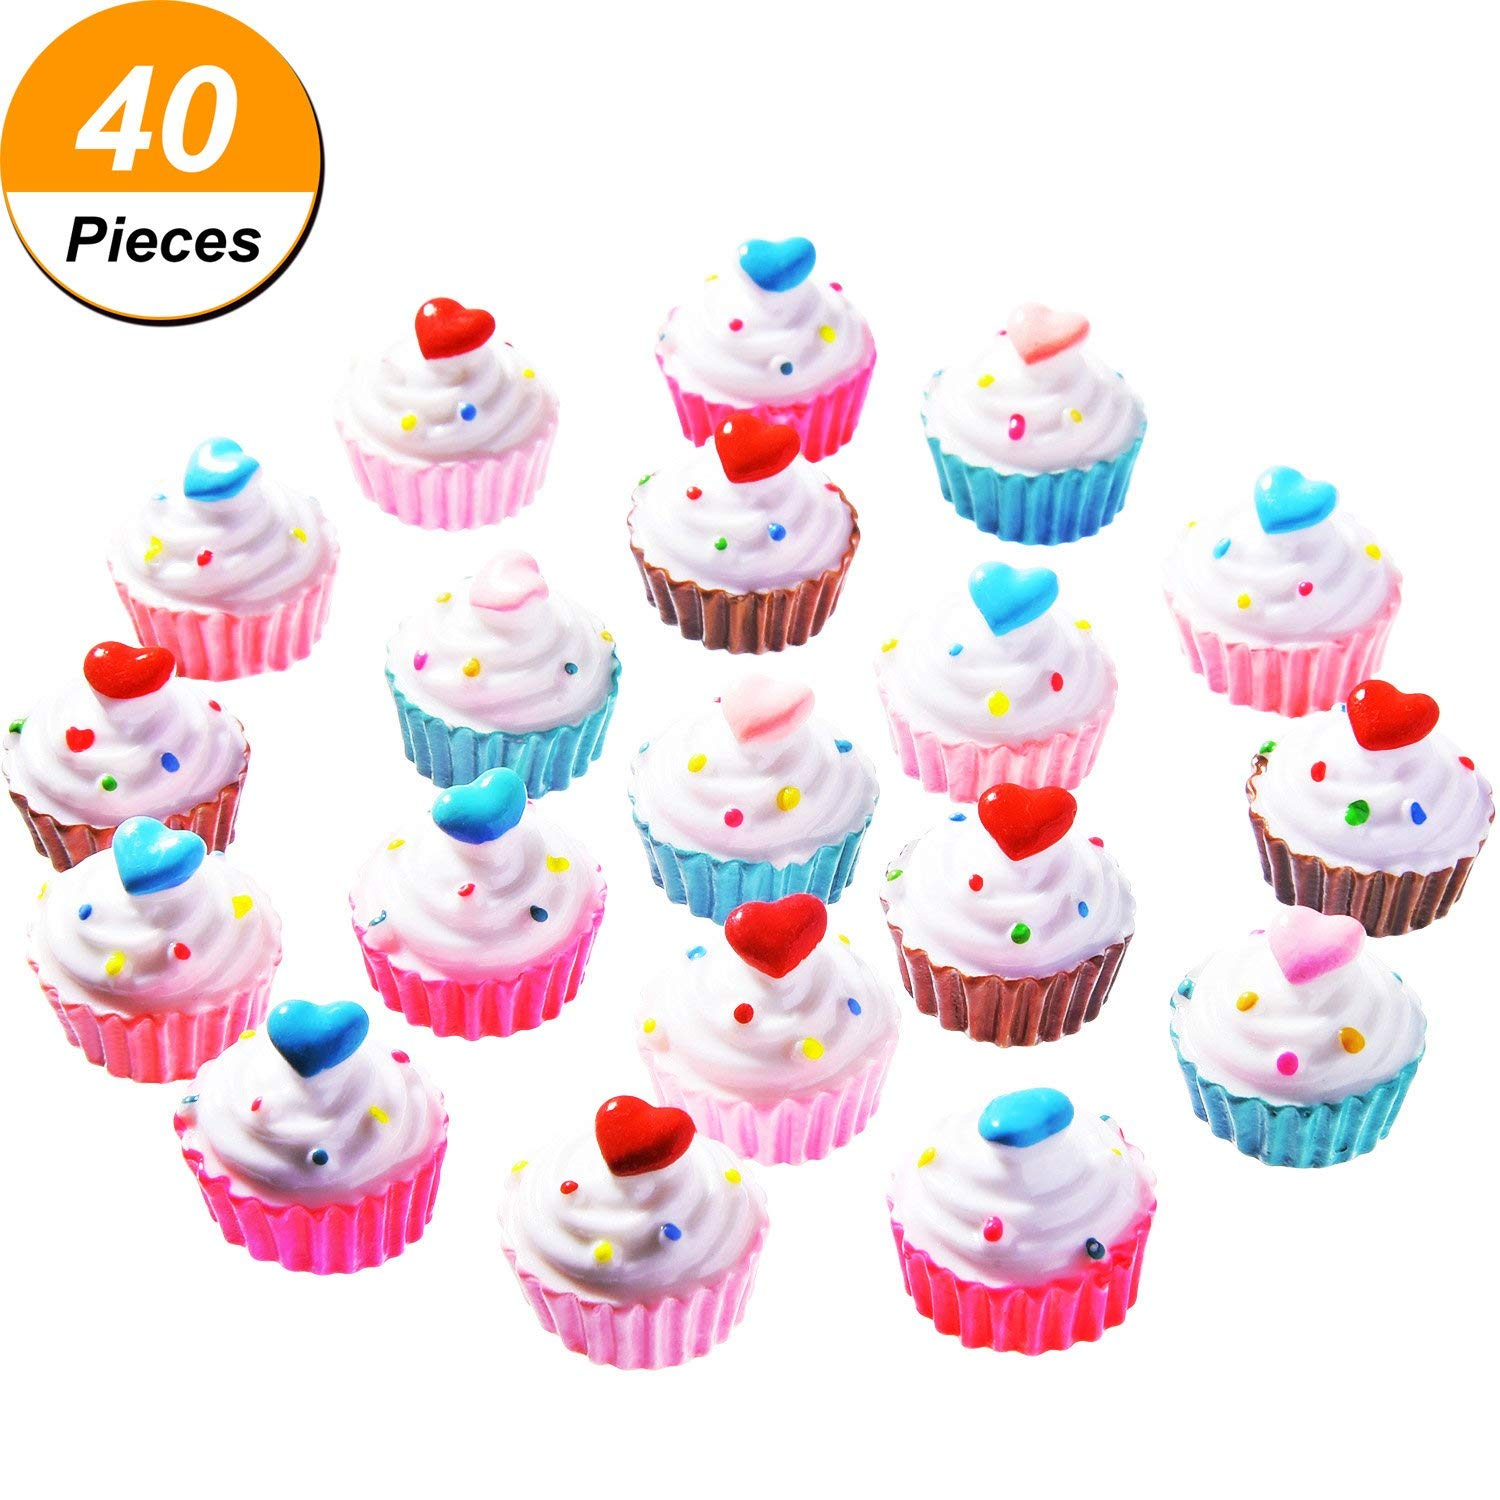 TecUnite 40 Pieces Cupcakes Slime Charms Slime Beads Supplies for Homemade Crafts, Assorted Colors